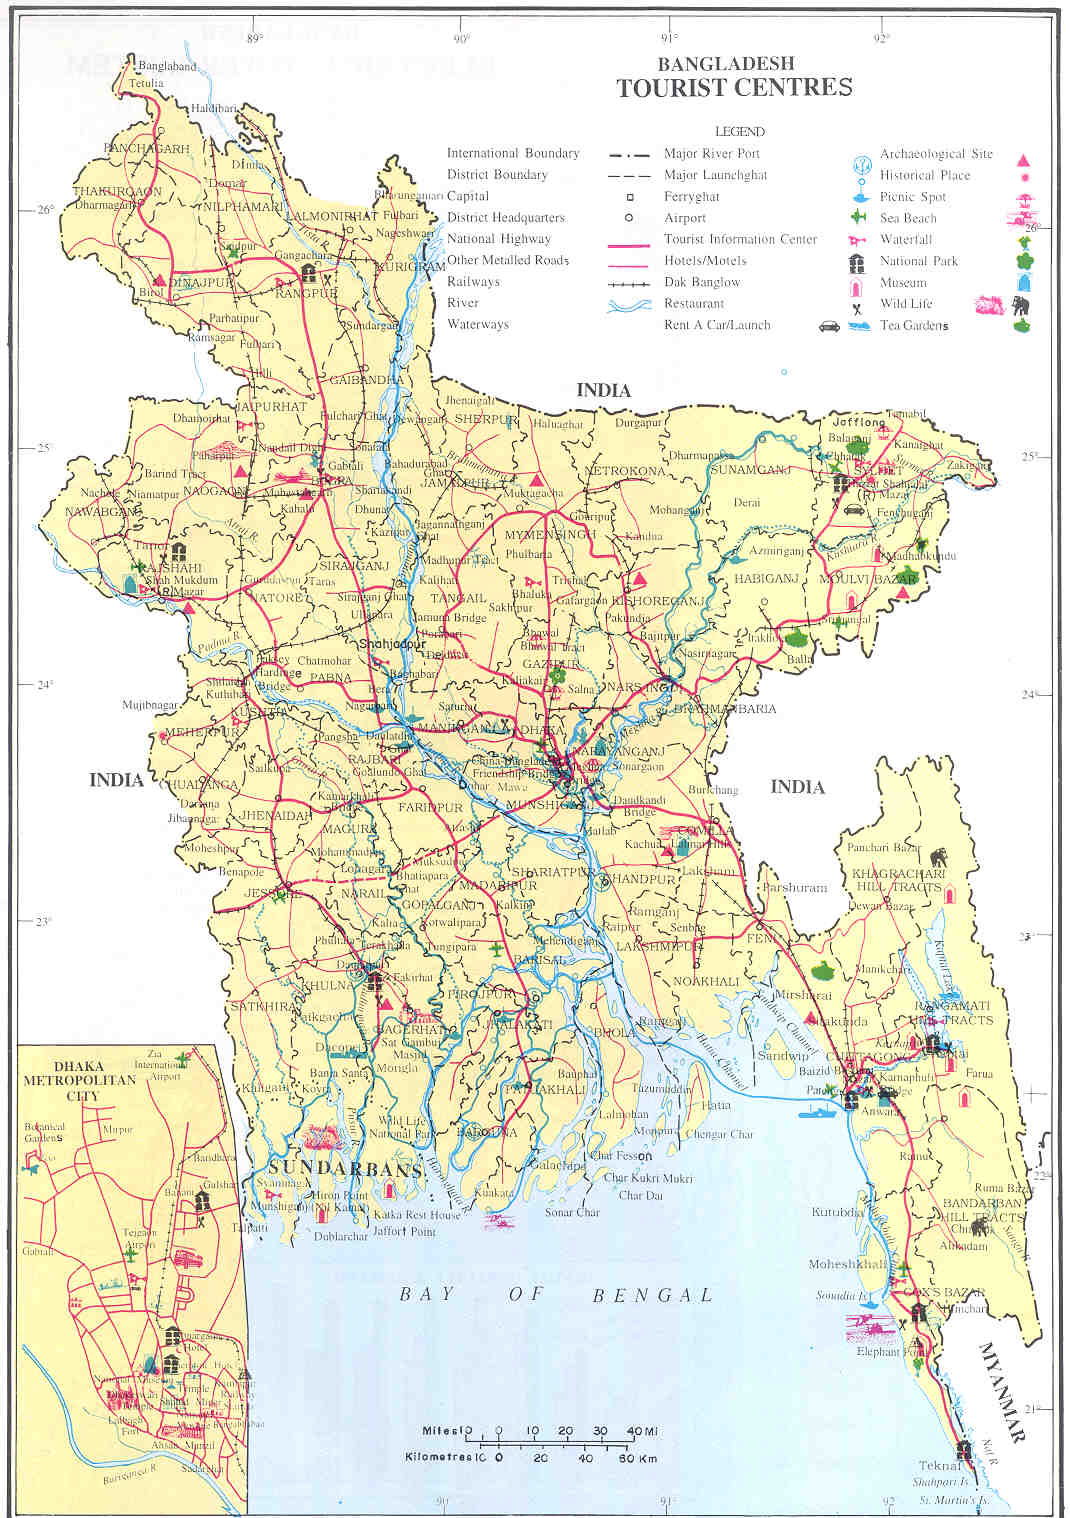 Bangladesh Tourist Center Map - Bangladesh • mappery